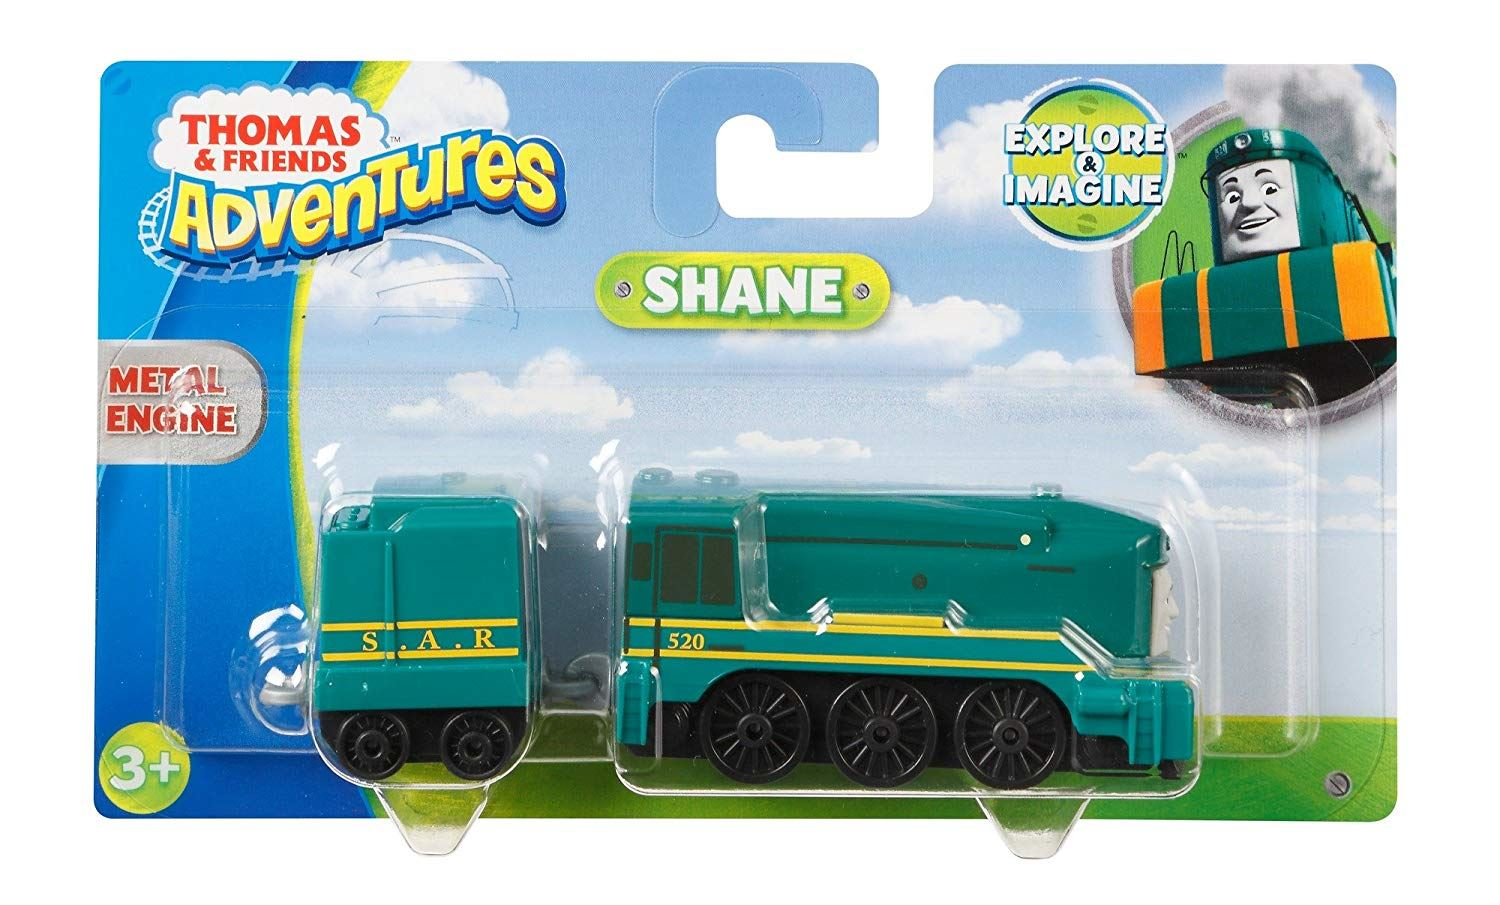 Thomas-amp-Friends-Adventures-Ferdinand-lexi-Shane-Dash-Huge-Bill-Trains Indexbild 43